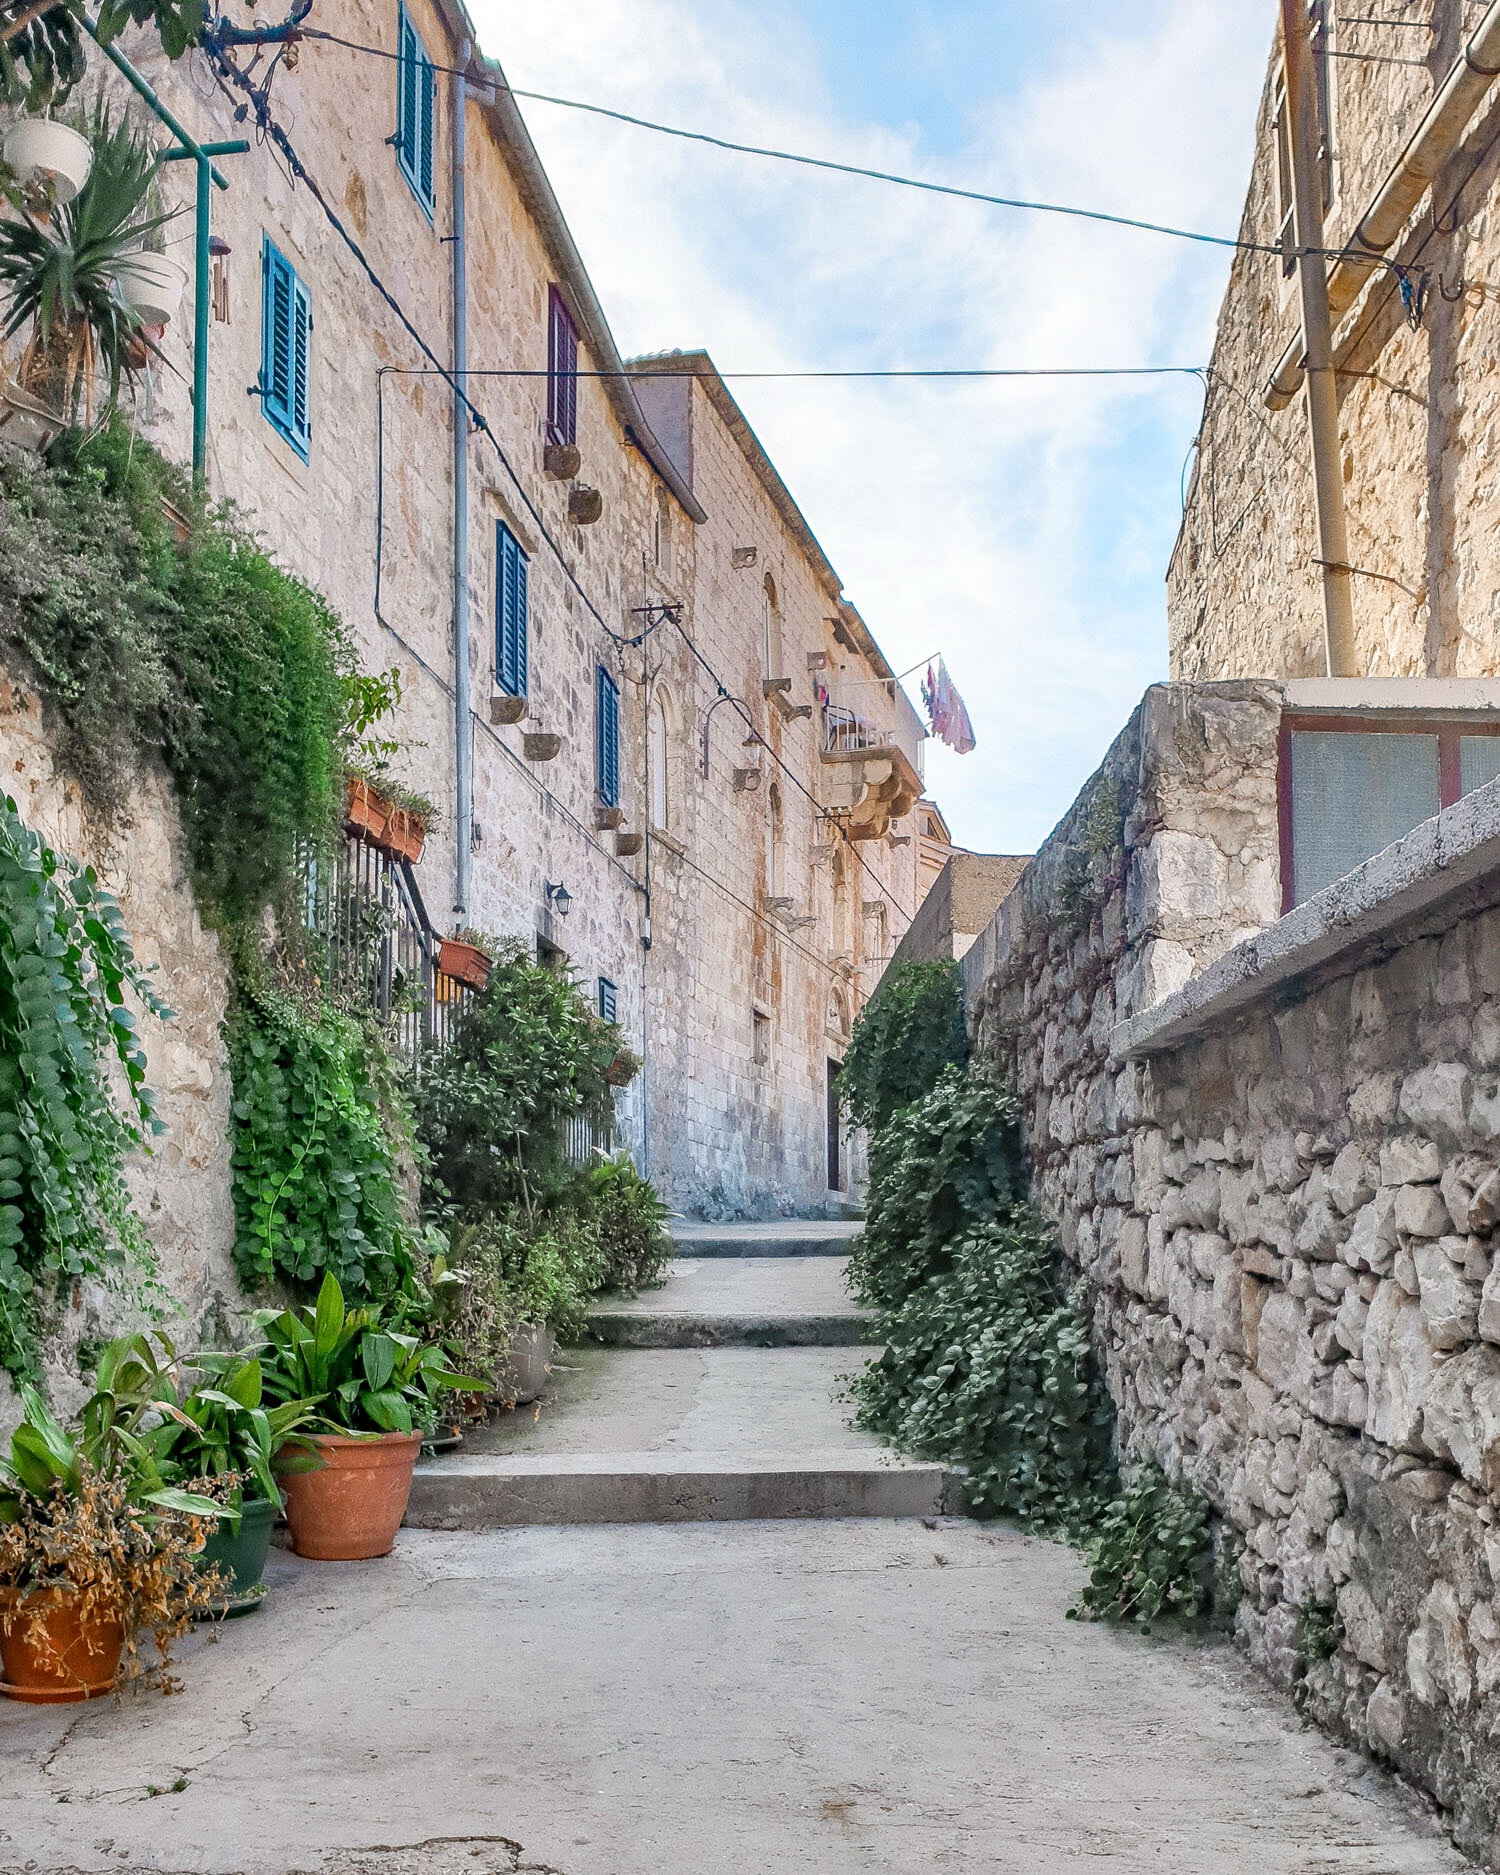 Charming streets of Hvar, Croatia